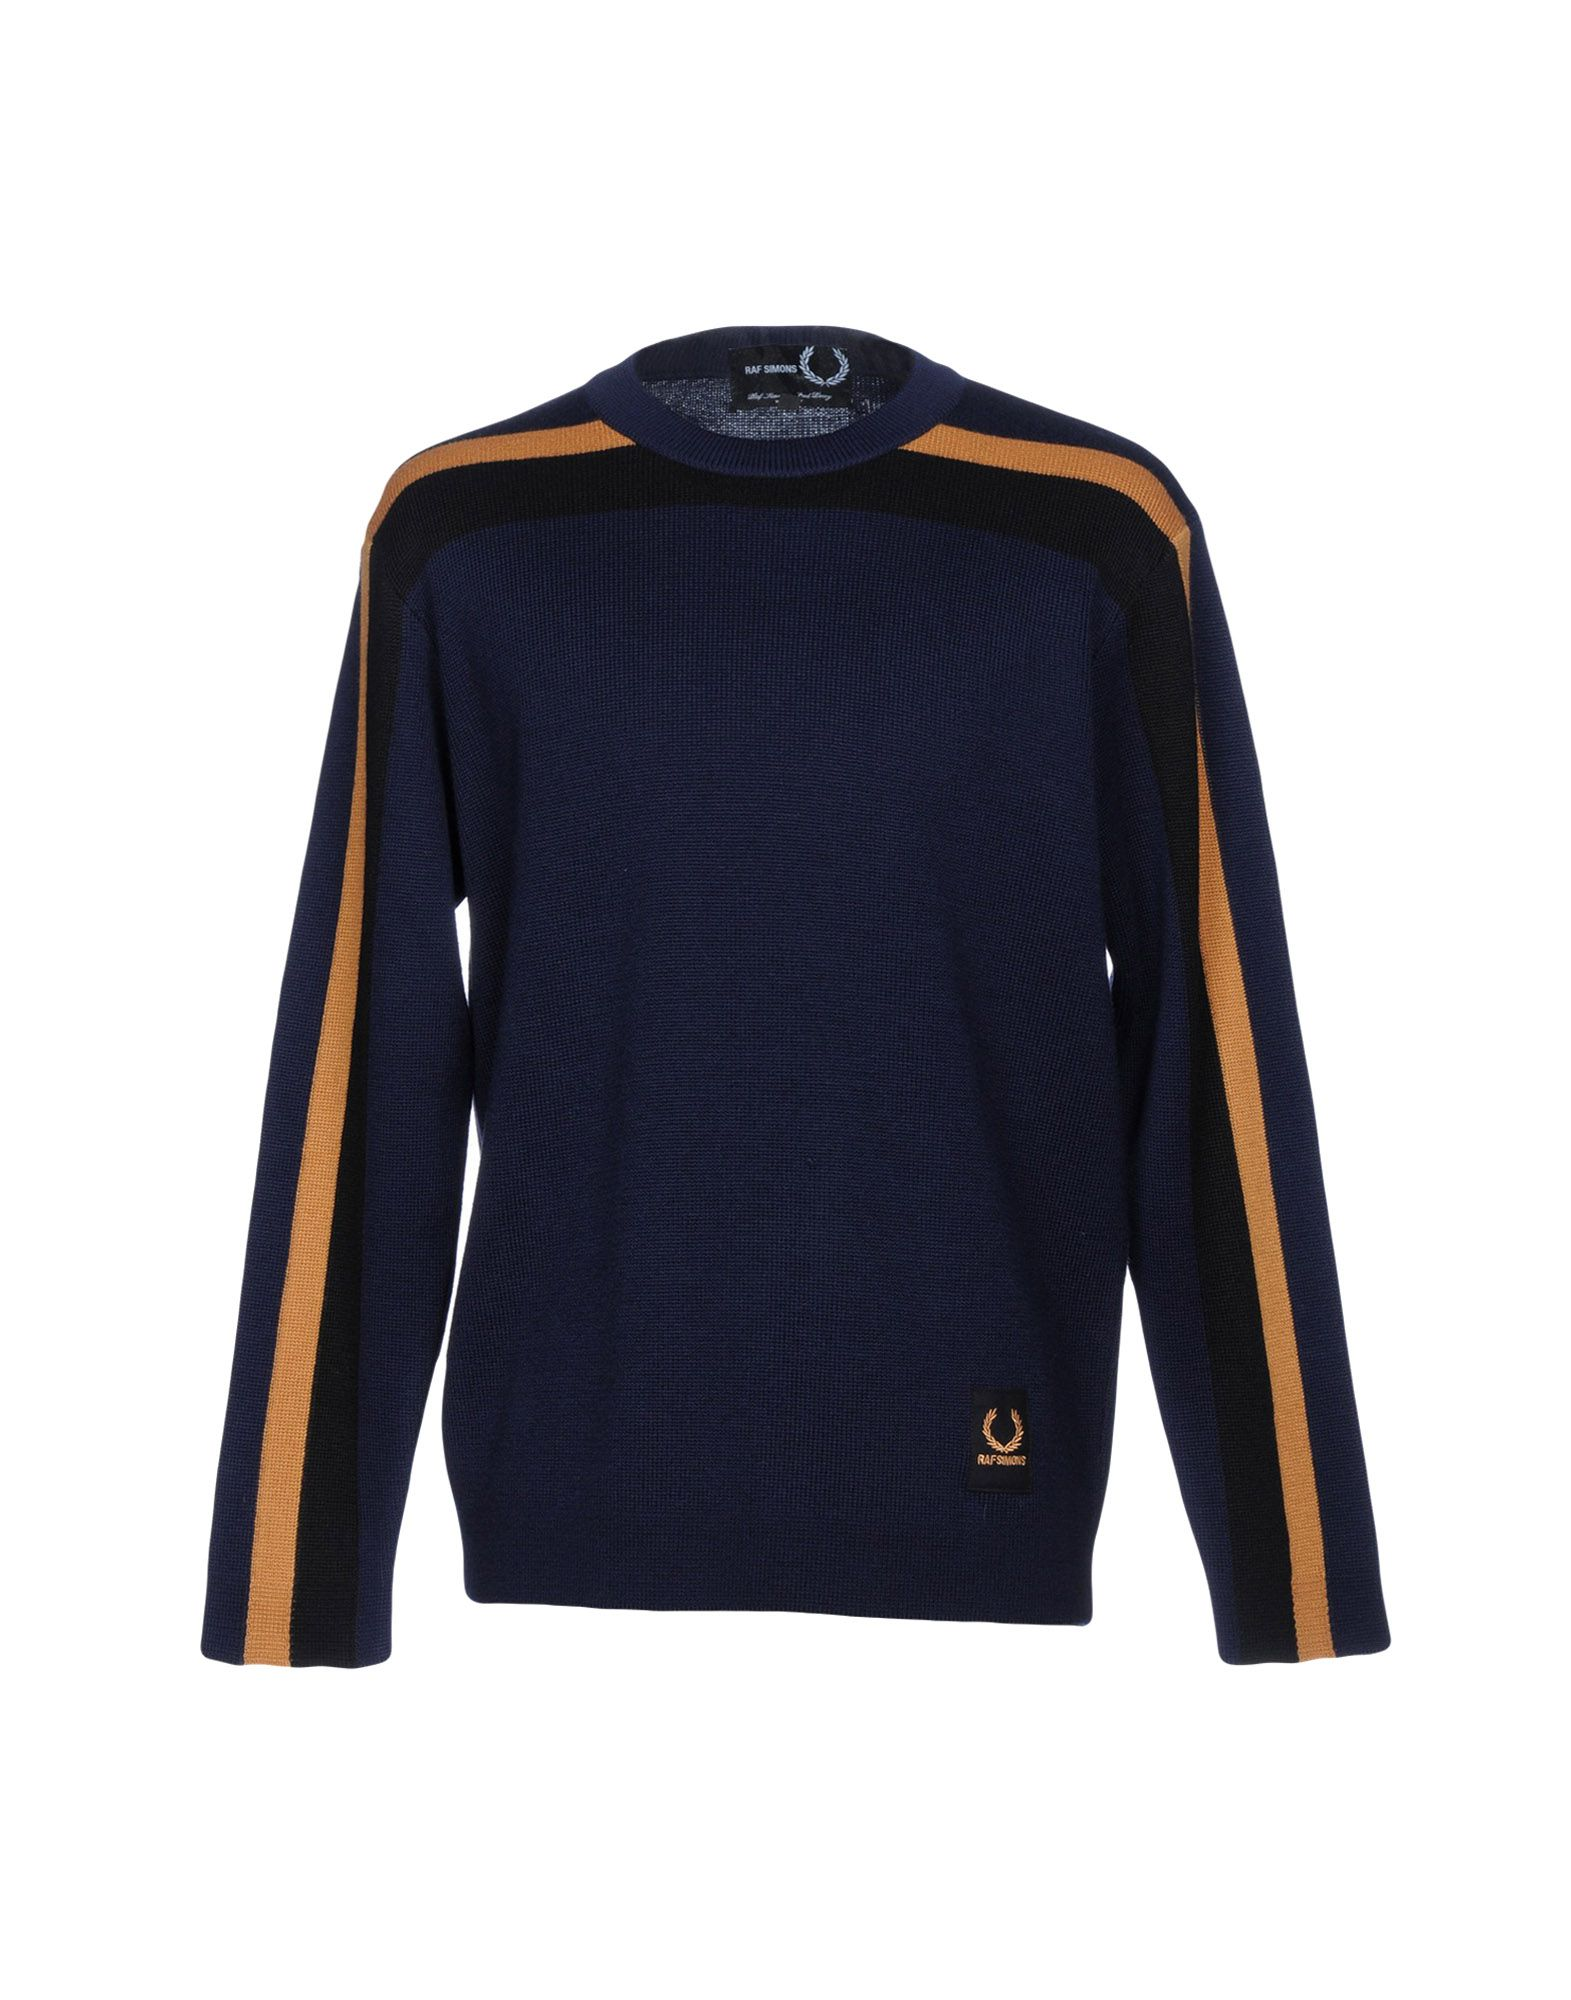 RAF SIMONS FRED PERRY Свитер fred perry свитер